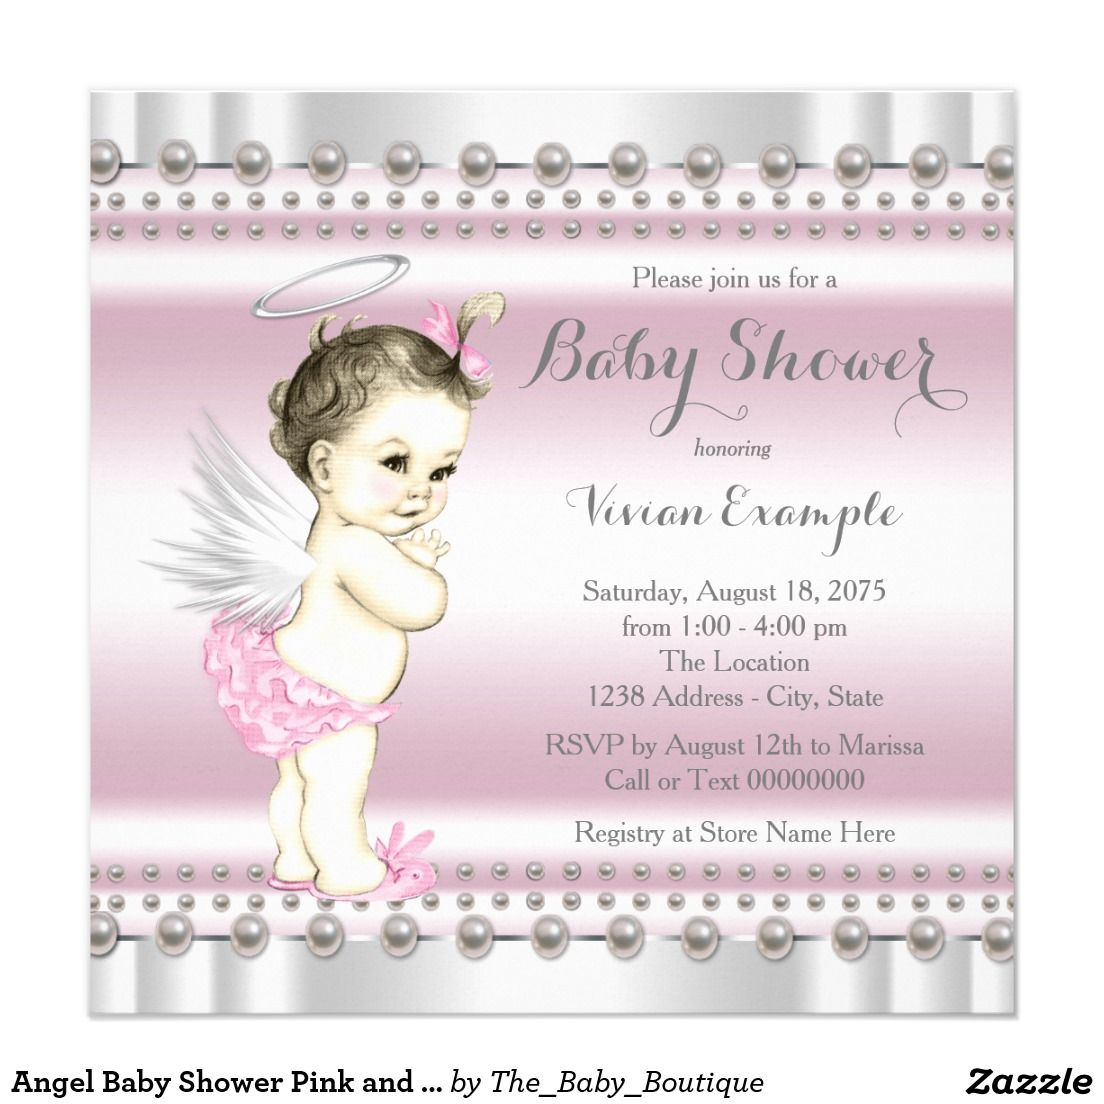 Angel Baby Shower Pink and Gray Invitation | Girl Baby Shower ...